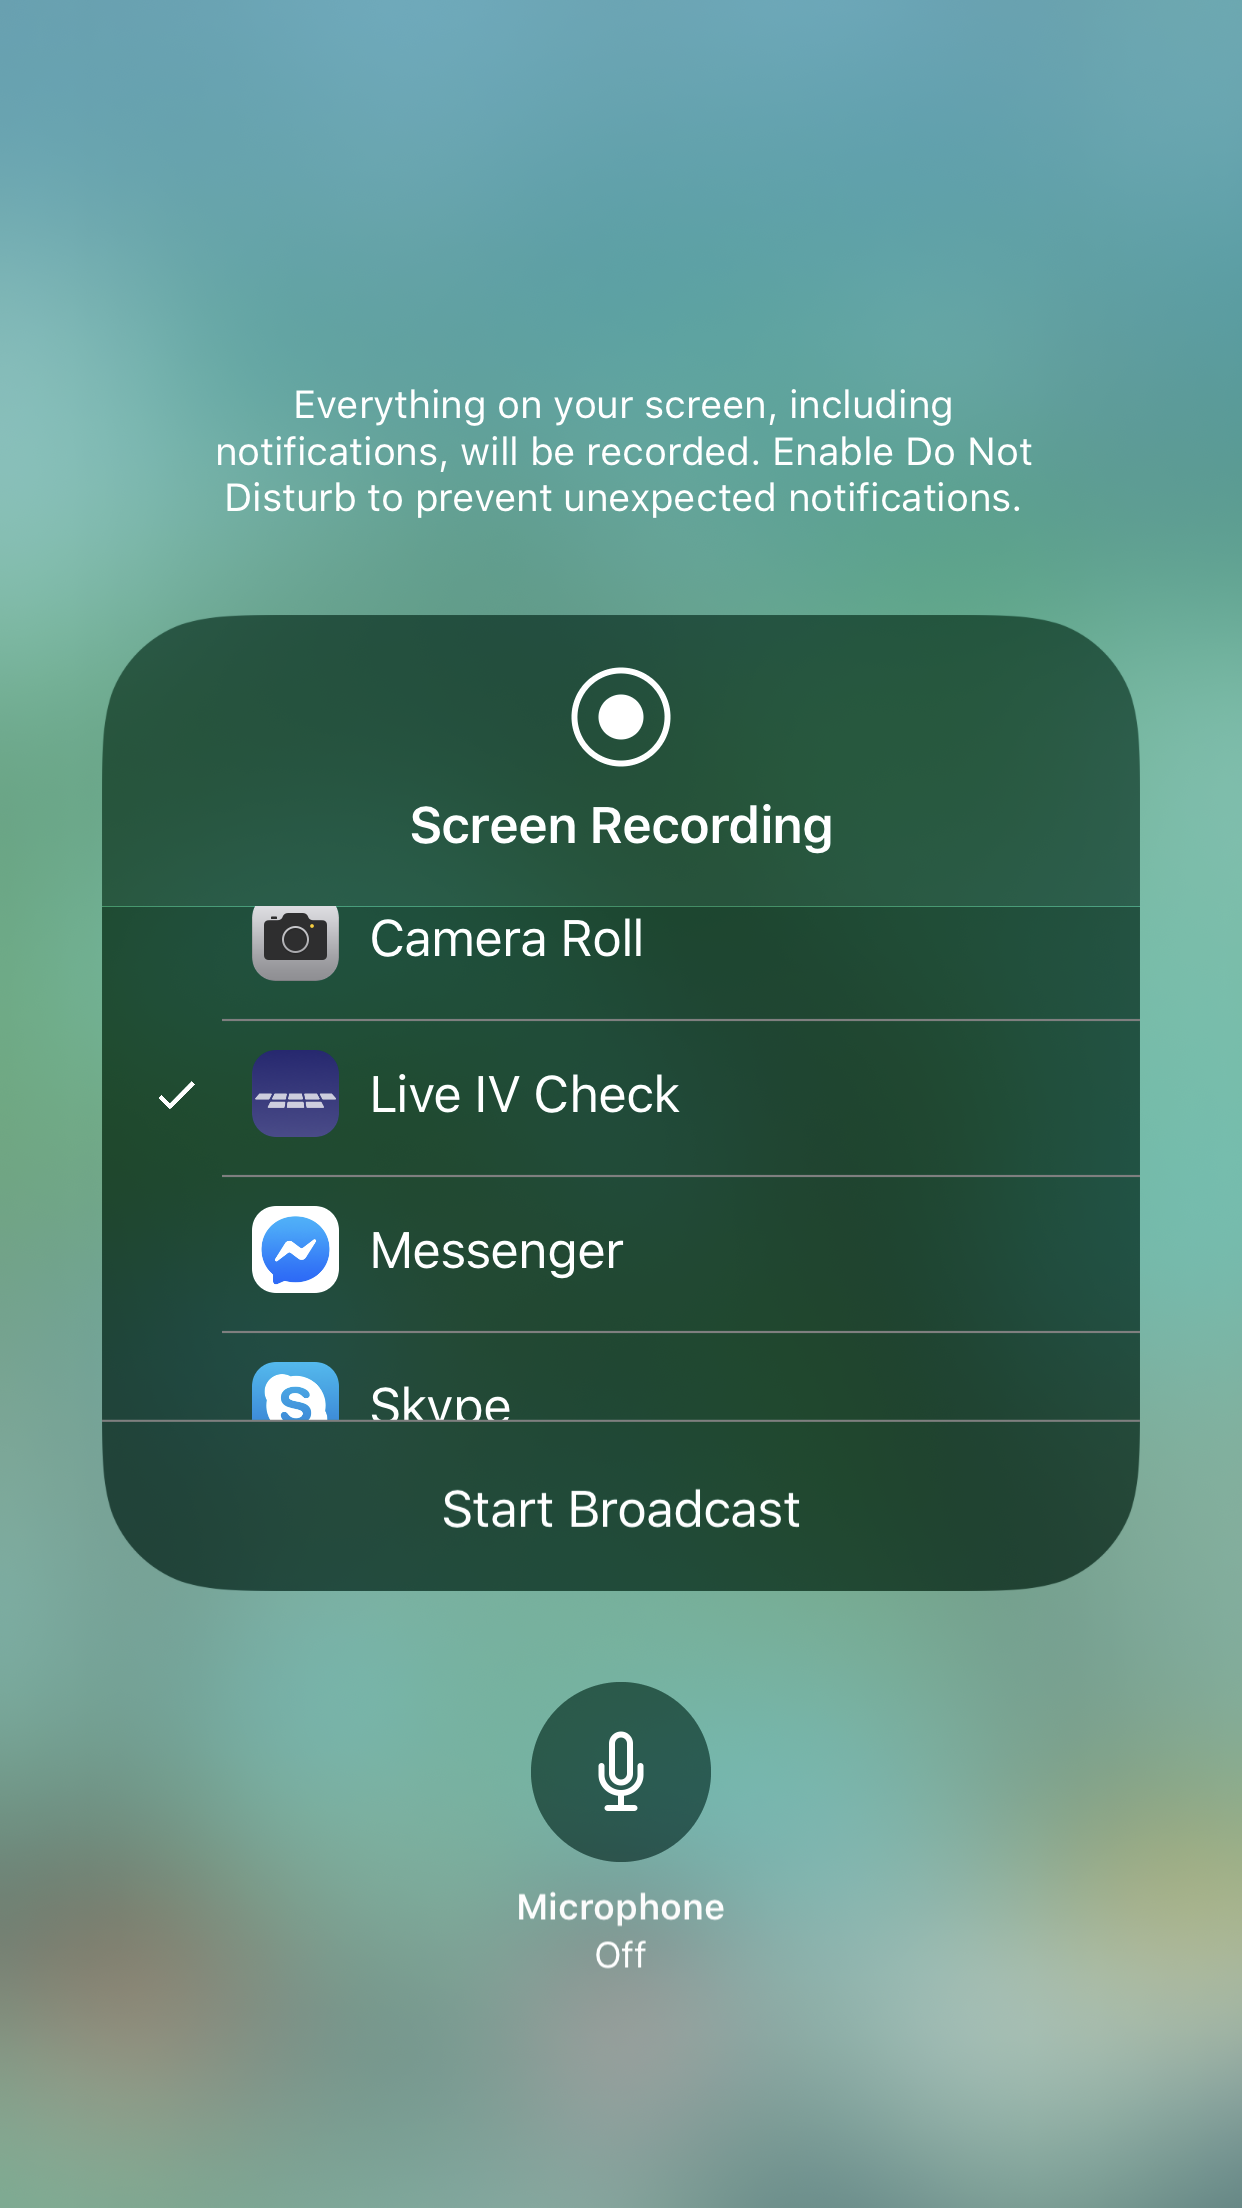 PokéKeys App Review - Screenshot showing the Live IV Check 'Start Broadcast' screen within the iOS Screen Recorder